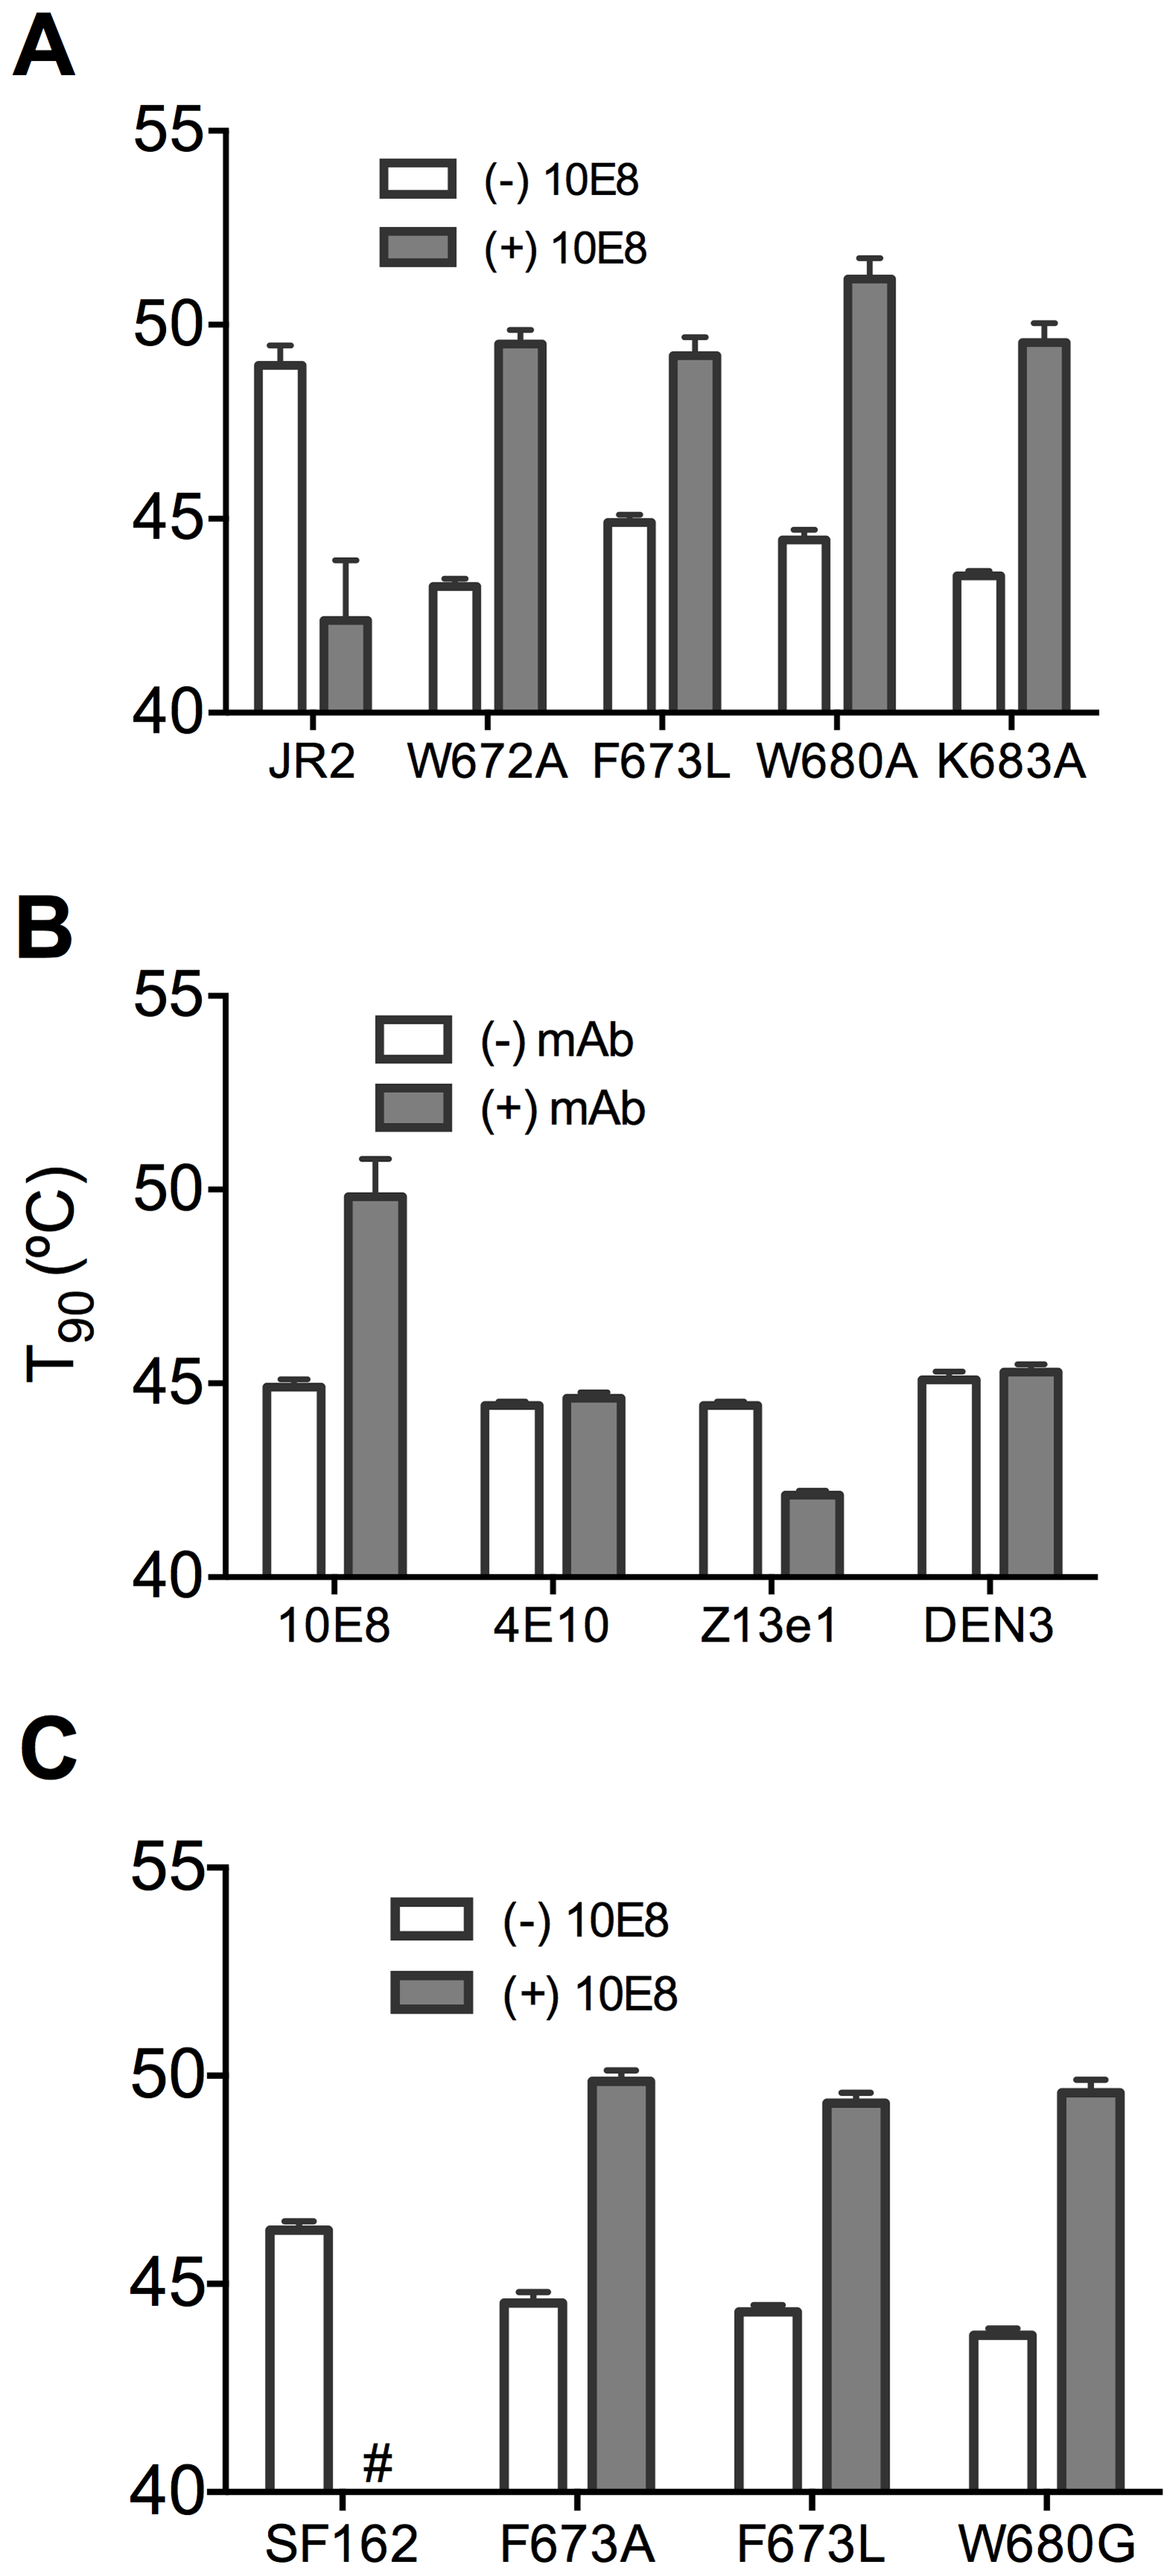 Presence of 10E8 enhances functional thermostability of multiple MPER mutants of JR2 and SF162 within the 10E8 linear epitope.